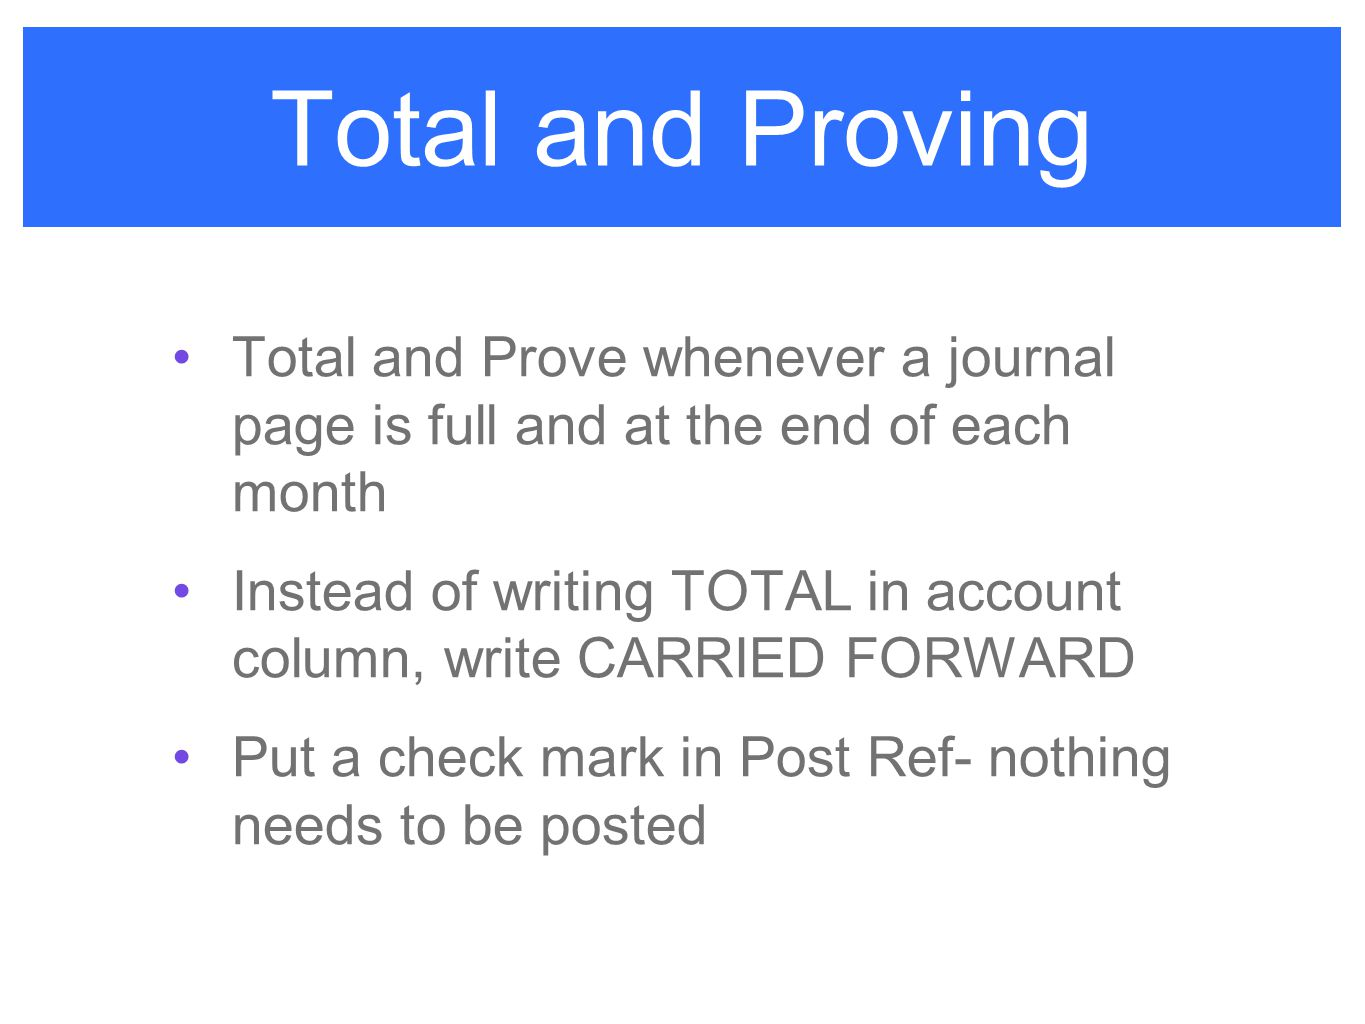 Total and Proving Total and Prove whenever a journal page is full and at the end of each month.